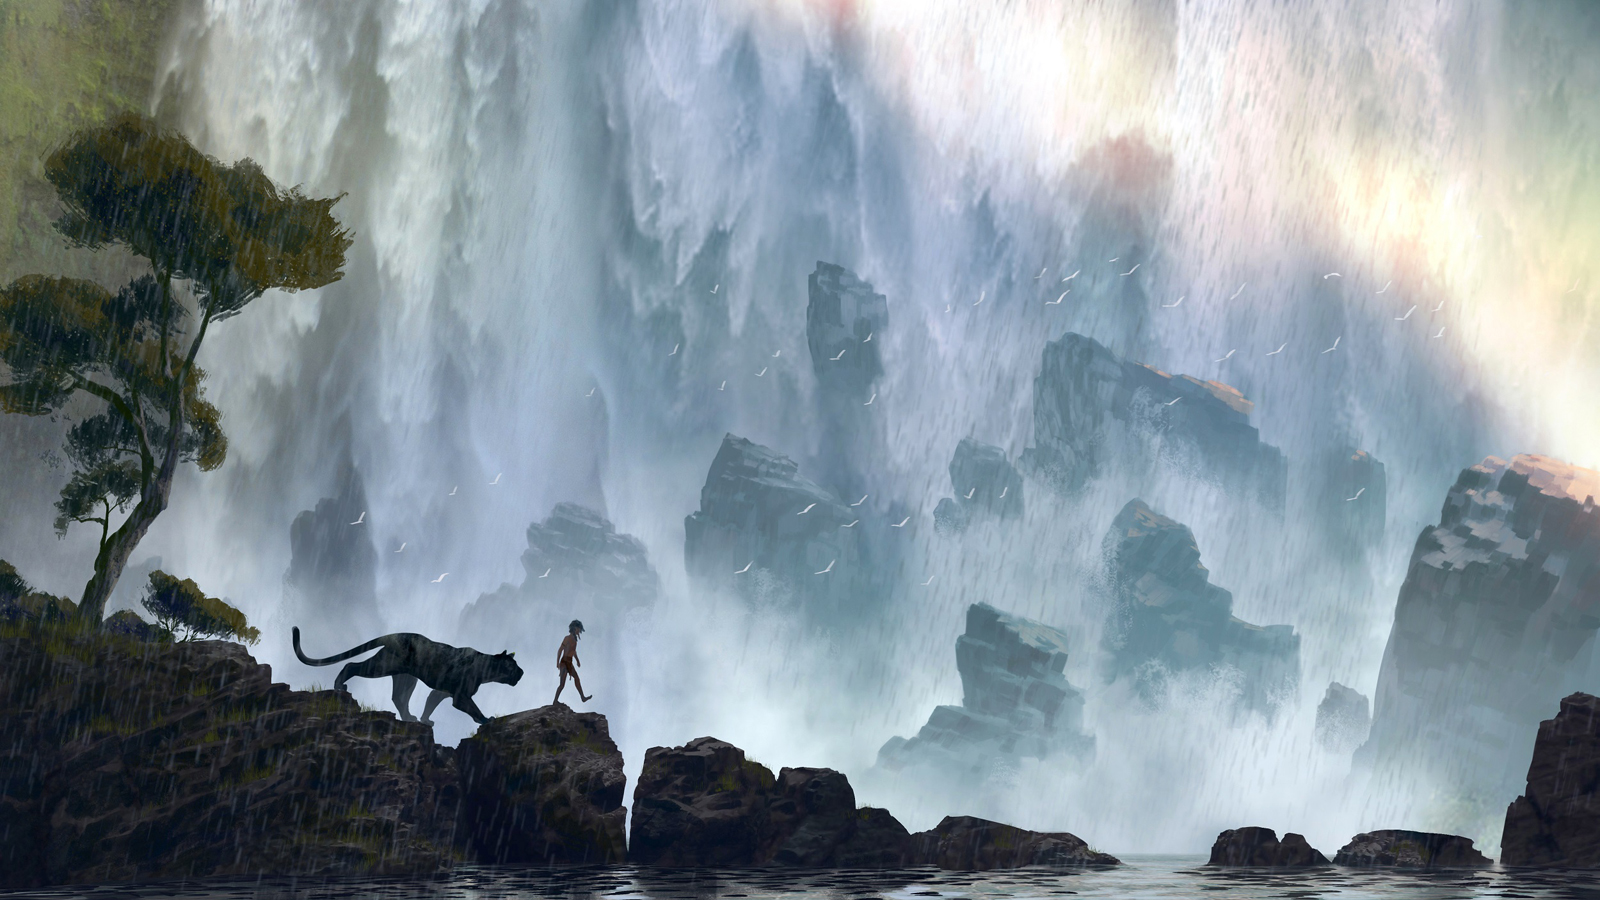 """Bagherra (voice of Ben Kingsley) mentors Mowgli (newcomer Neel Sethi) in """"The Jungle Book."""" In theaters Oct. 9, 2015, the all-new live-action epic adventure tells the tale of Mowgli, a man-cub raised in the jungle by a family of wolves, who embarks on a captivating journey of self-discovery when he's forced to abandon the only home he's ever known. Concept art by: Jonathan Bach. ©2014 Disney Enterprises, Inc. All Right Reserved."""